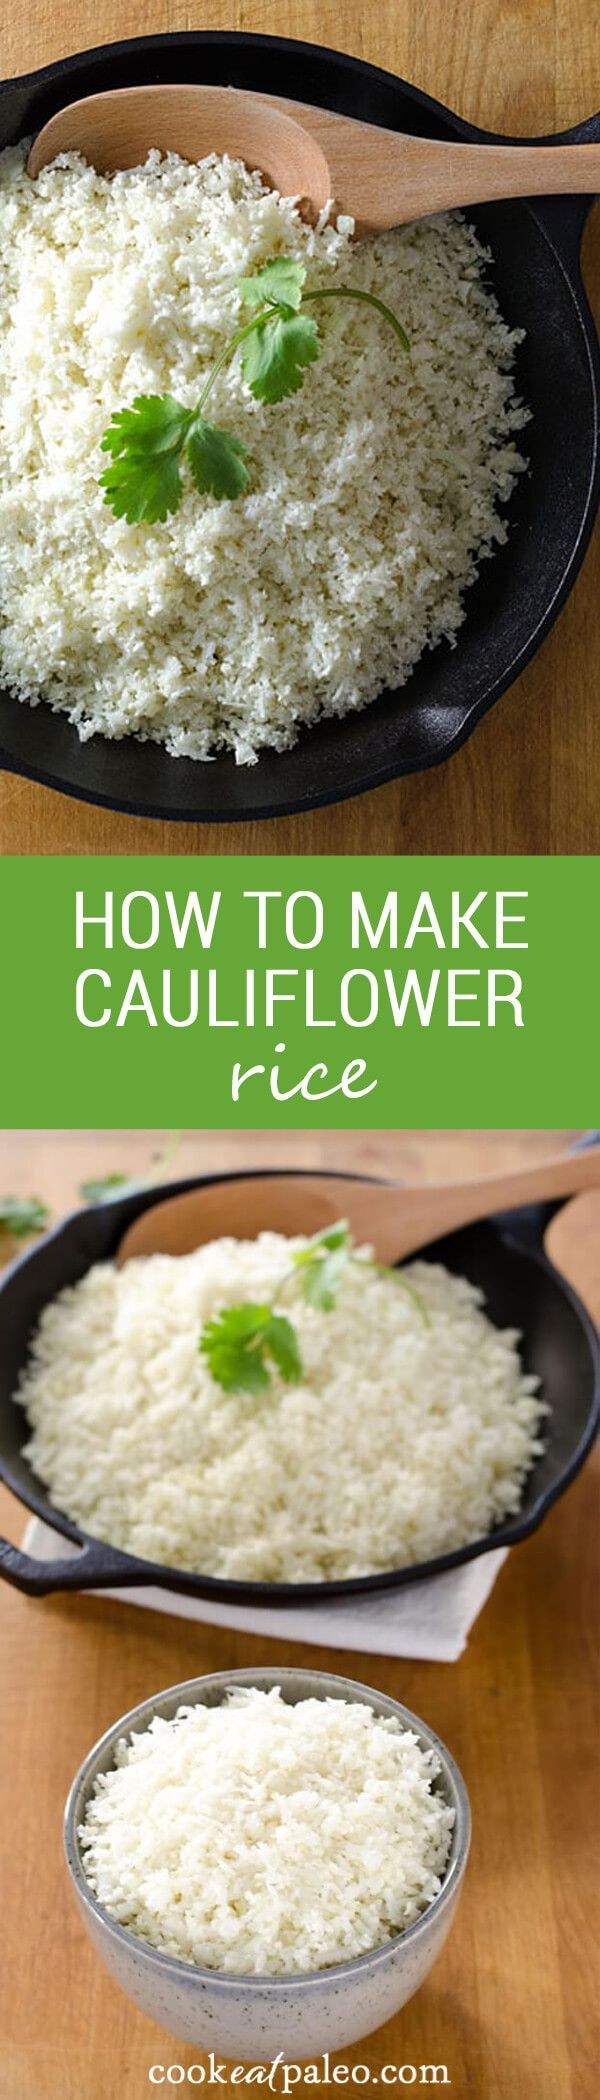 how to cook 1 cup of minute rice